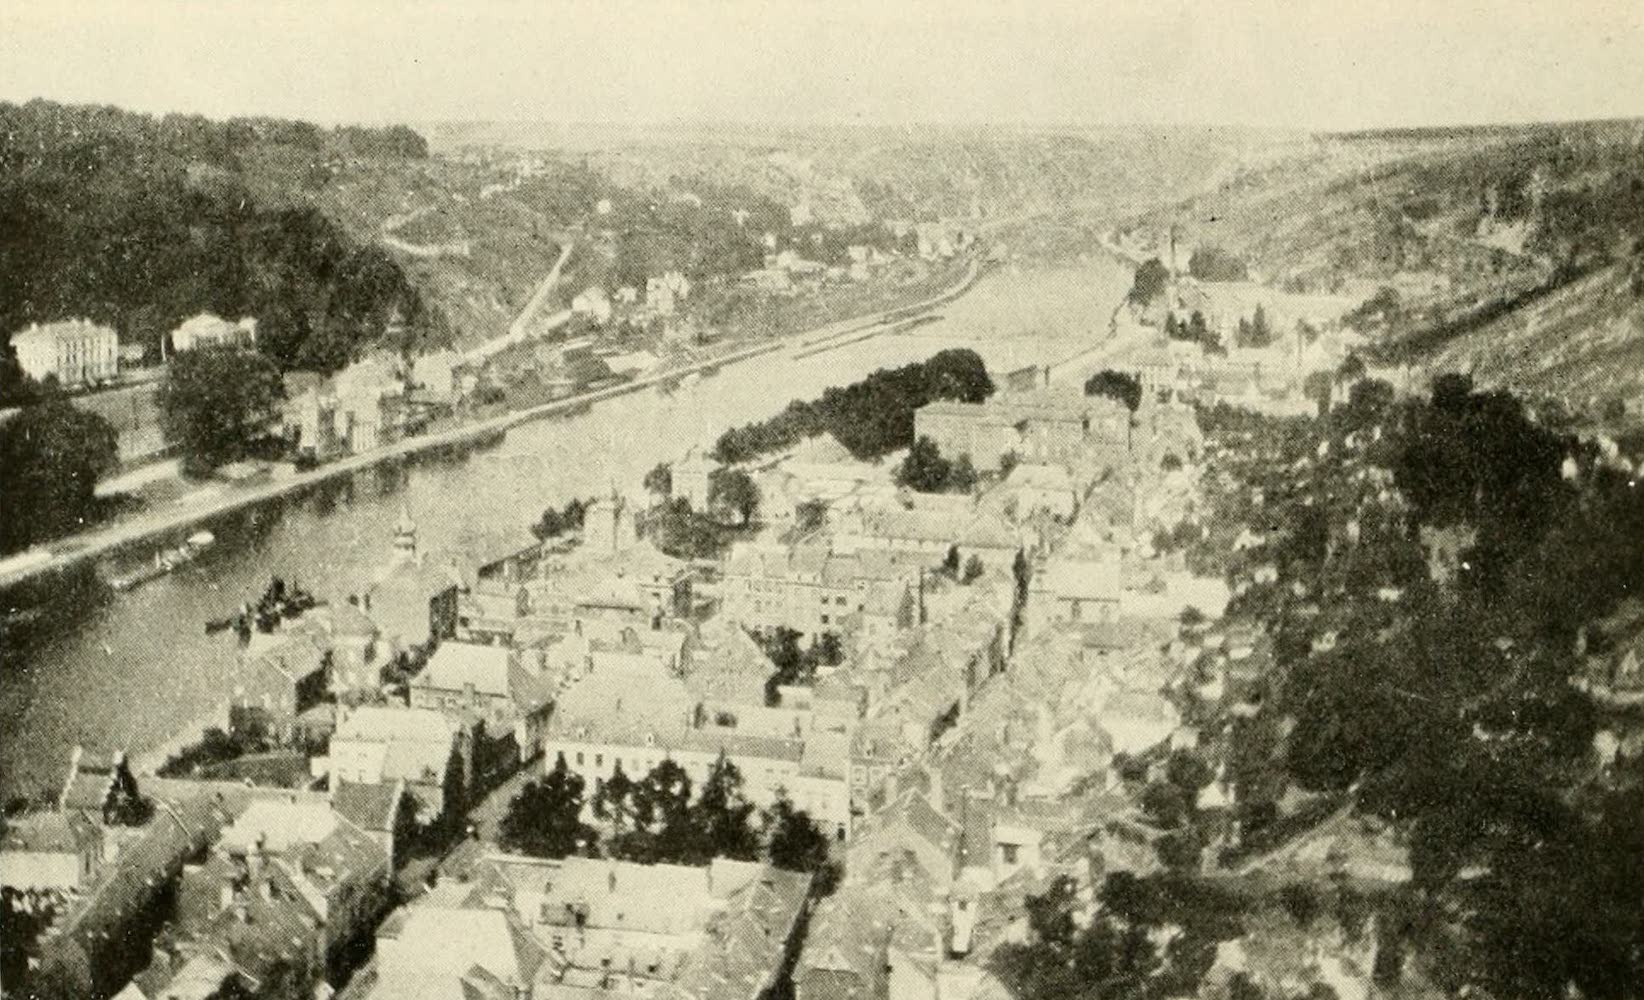 Laird & Lee's World's War Glimpses - The River Meuse (1914)